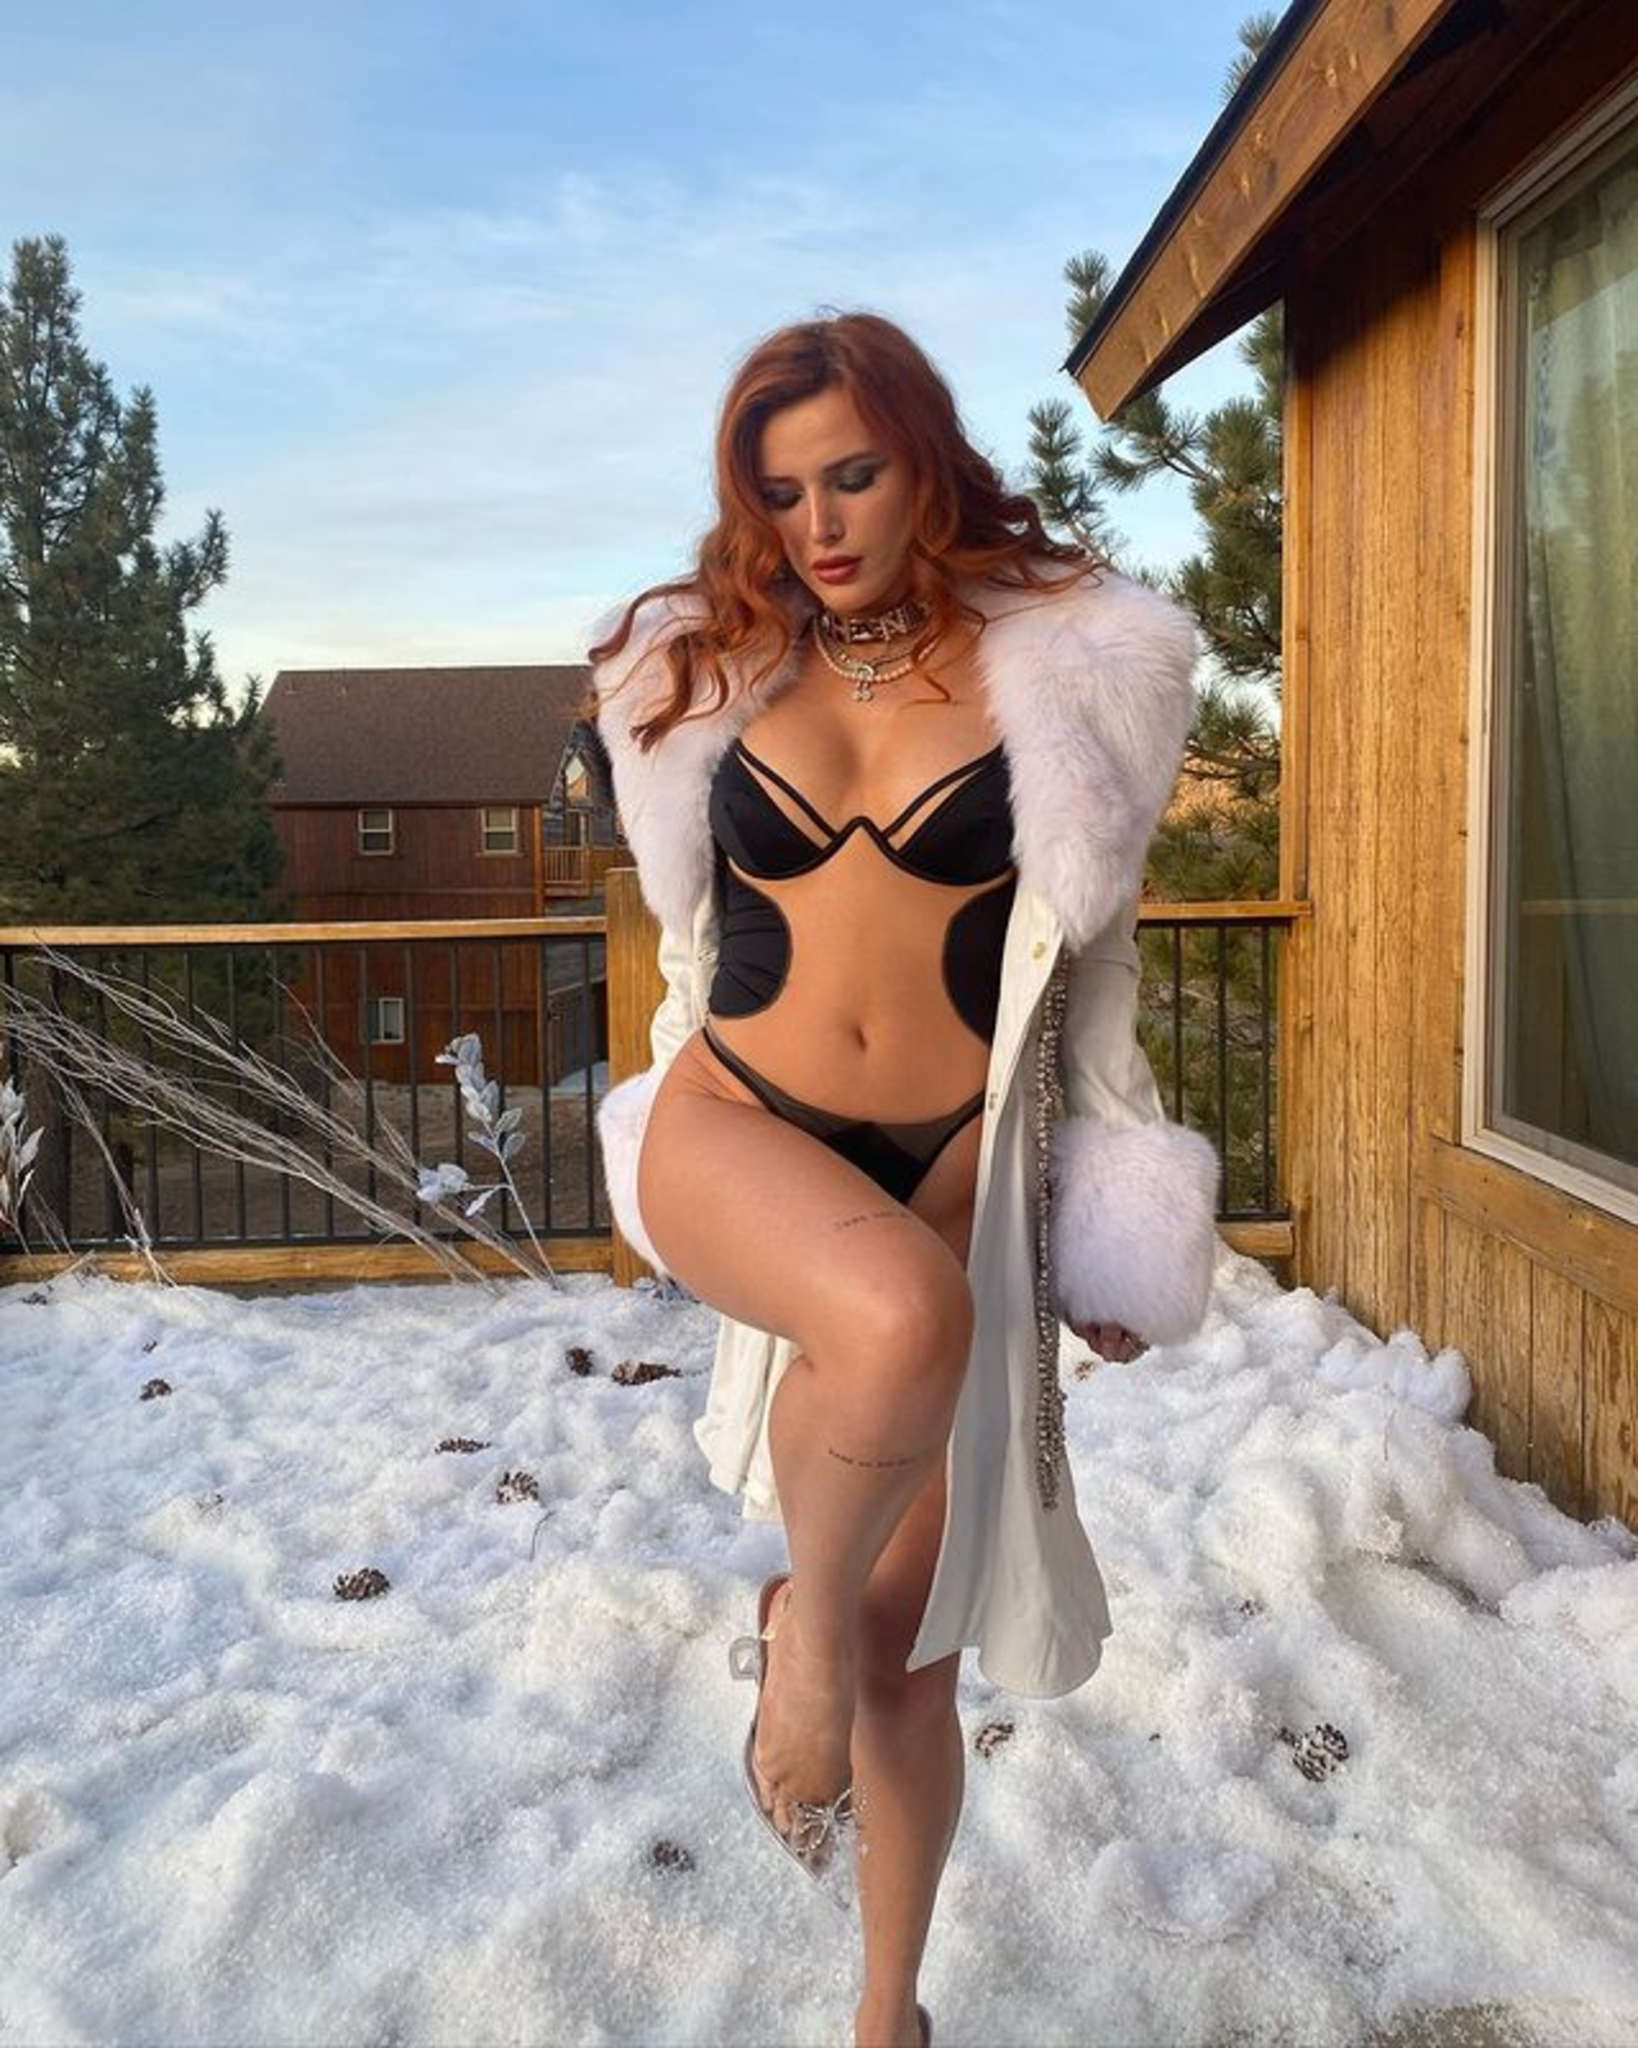 1609086075 170 Bella Thorne Wears Lingerie While Outside In The Snow